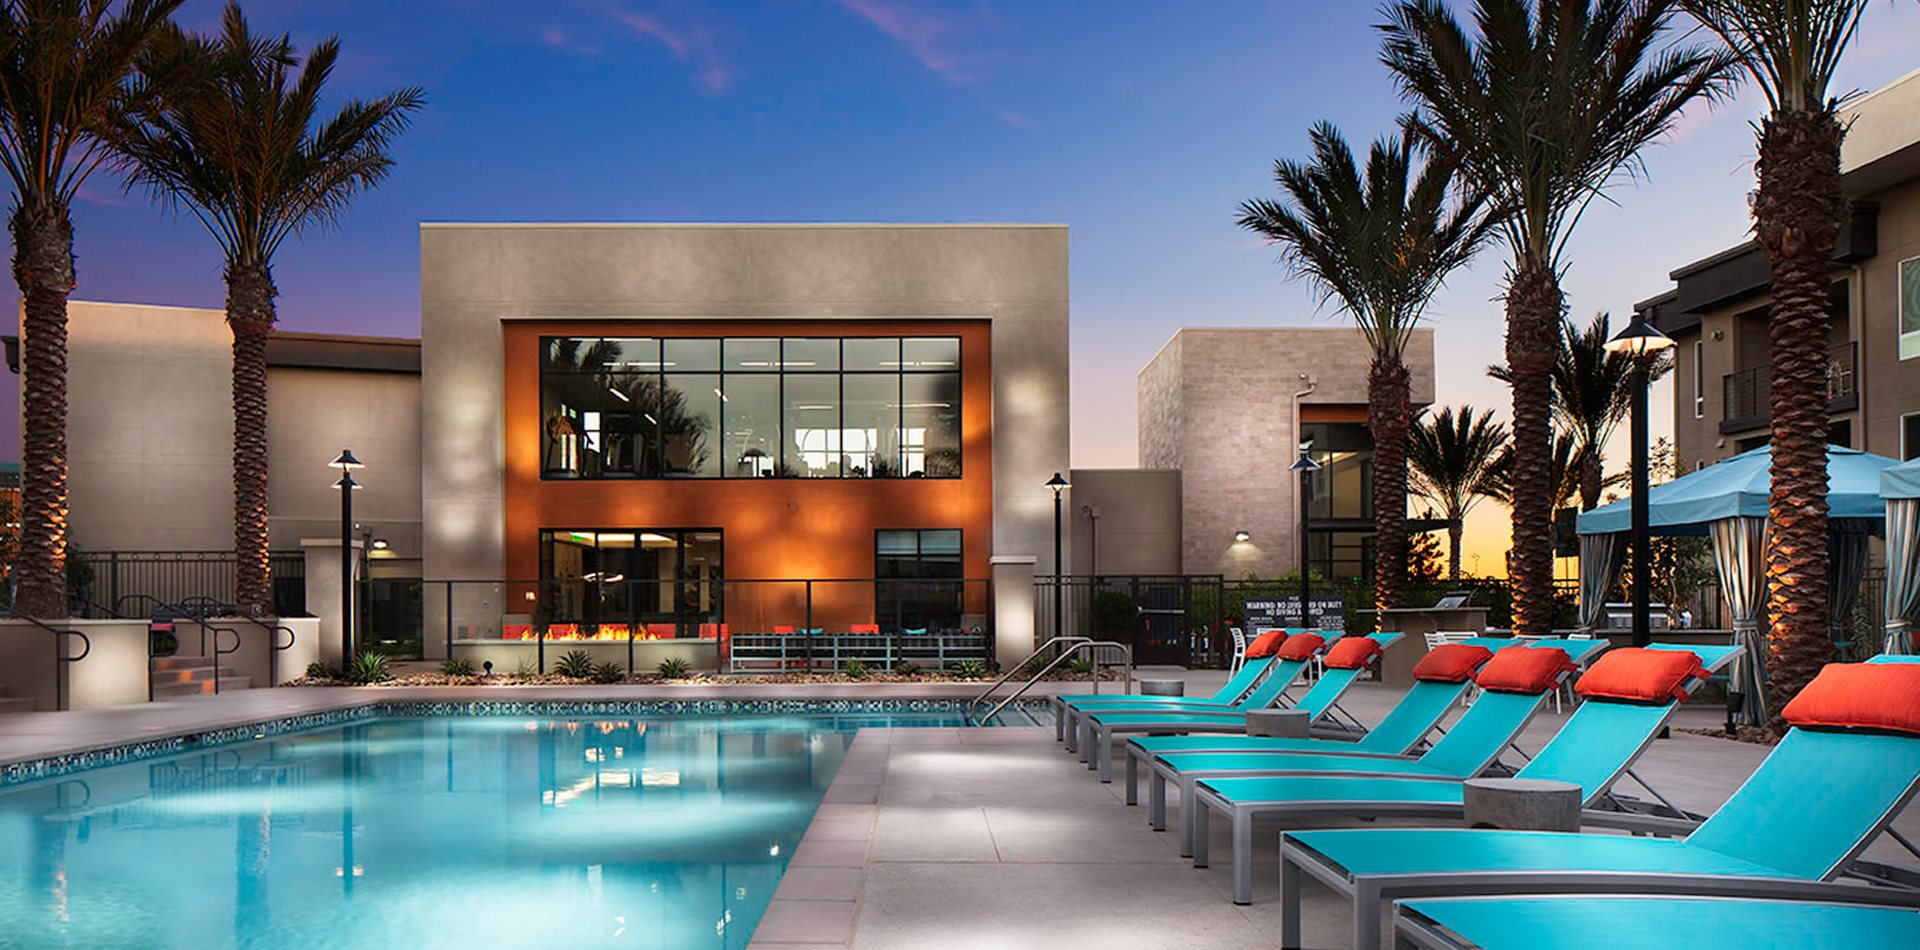 Pool at twilight at Pulse Millenia in Chula Vista, CA